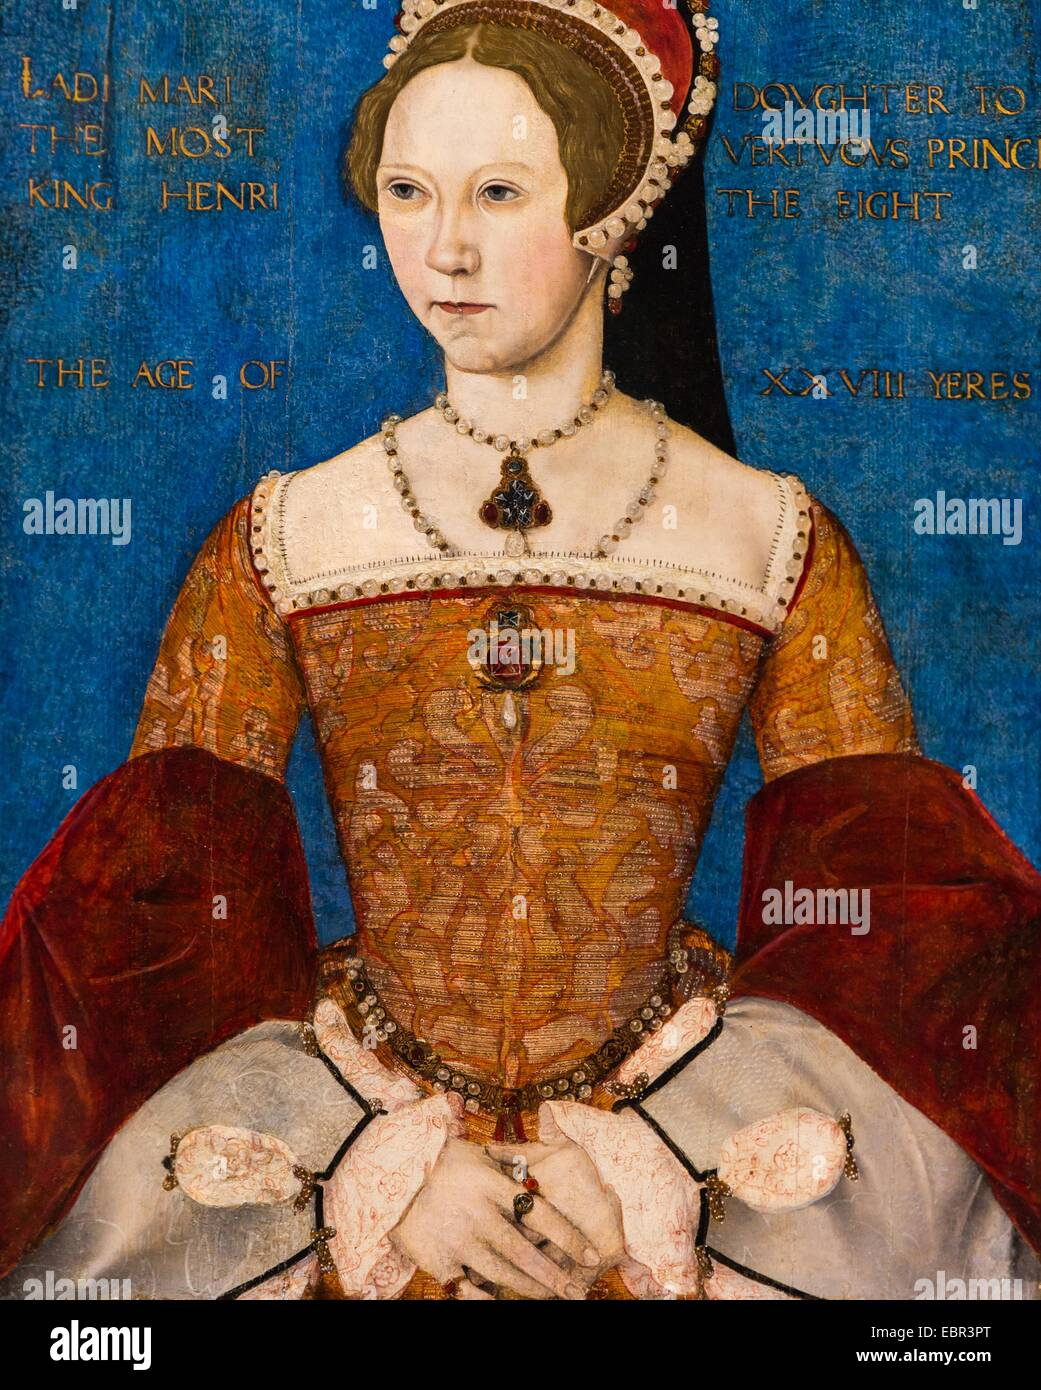 ActiveMuseum_0003624.jpg / Mary I, The Daughter of Henry VIII and Catherine of Aragon, 1544 - Master John  22/01/2014 - Stock Image